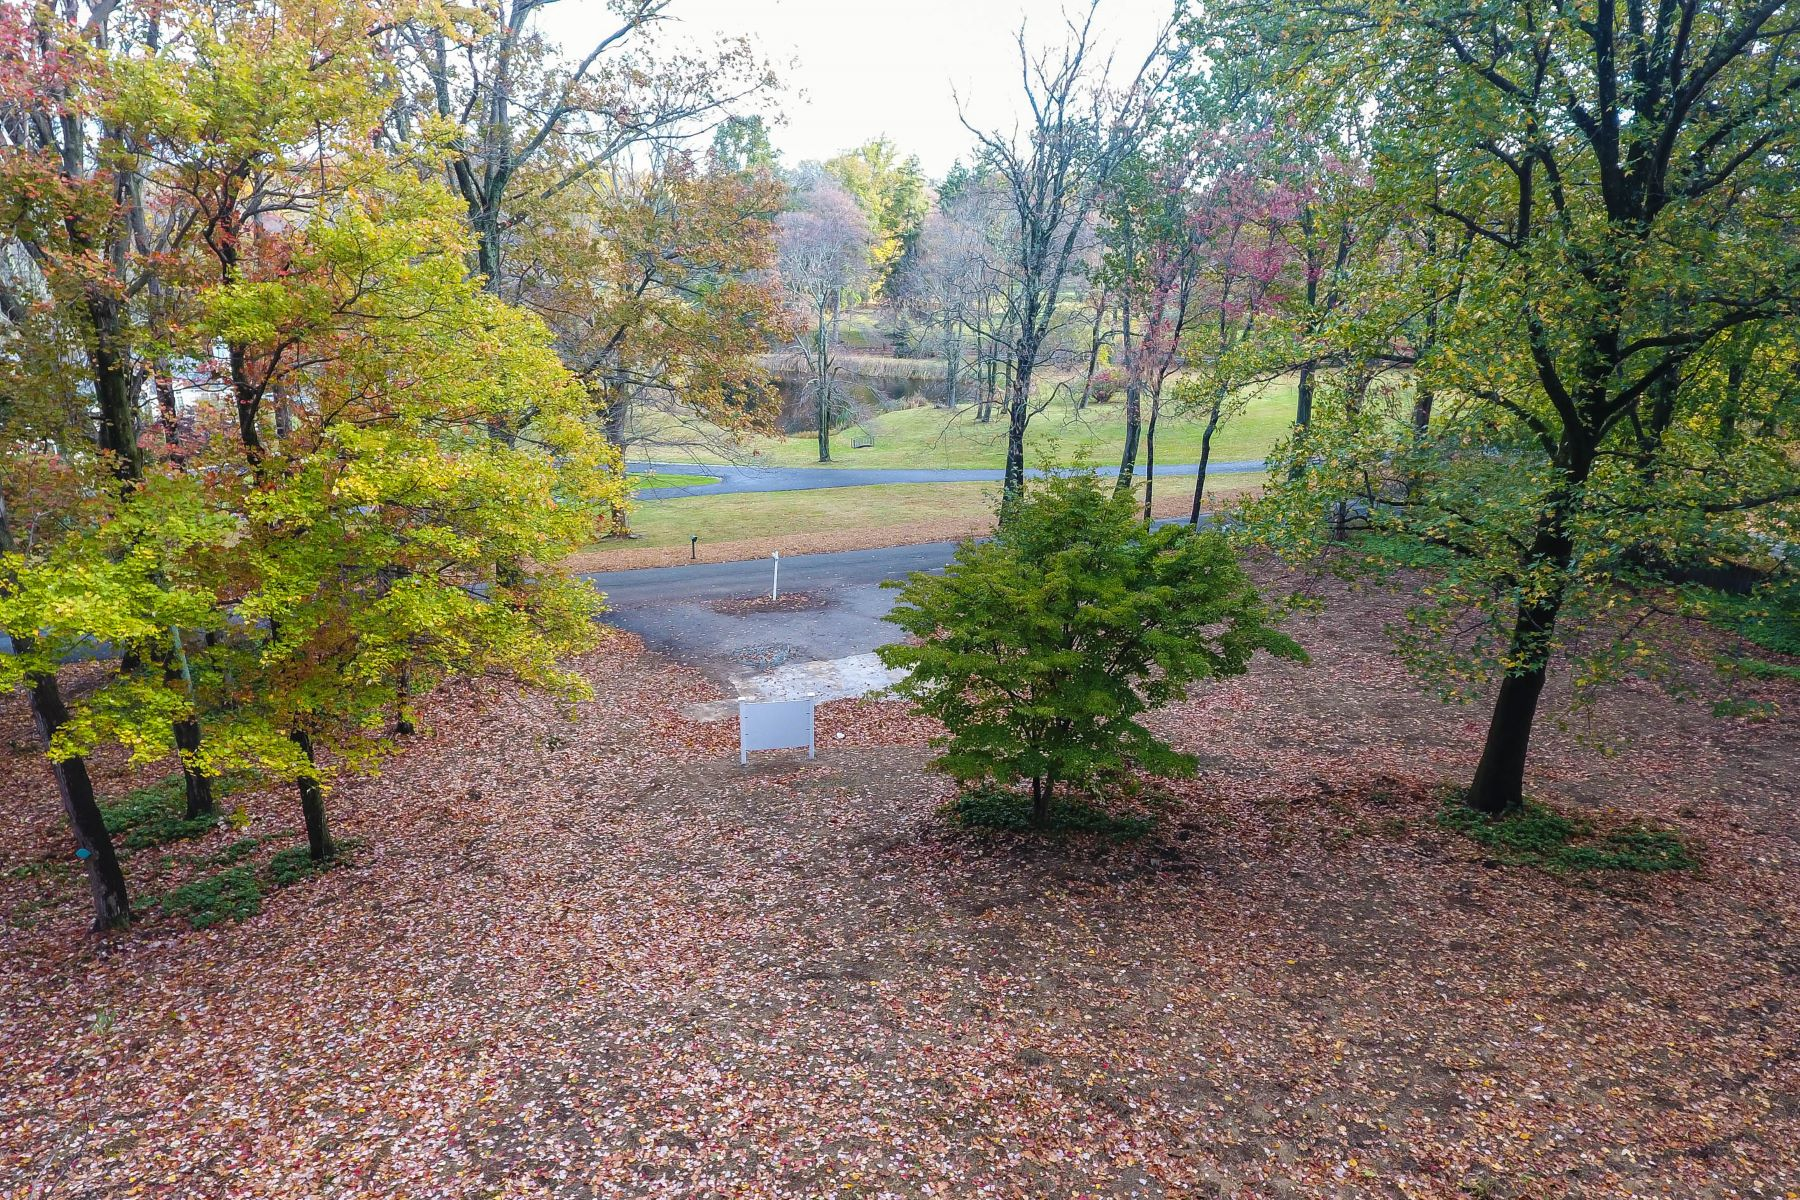 Land for Sale at Build Your Masterpiece! 20 Pfizer Road Bernardsville, New Jersey 07924 United States